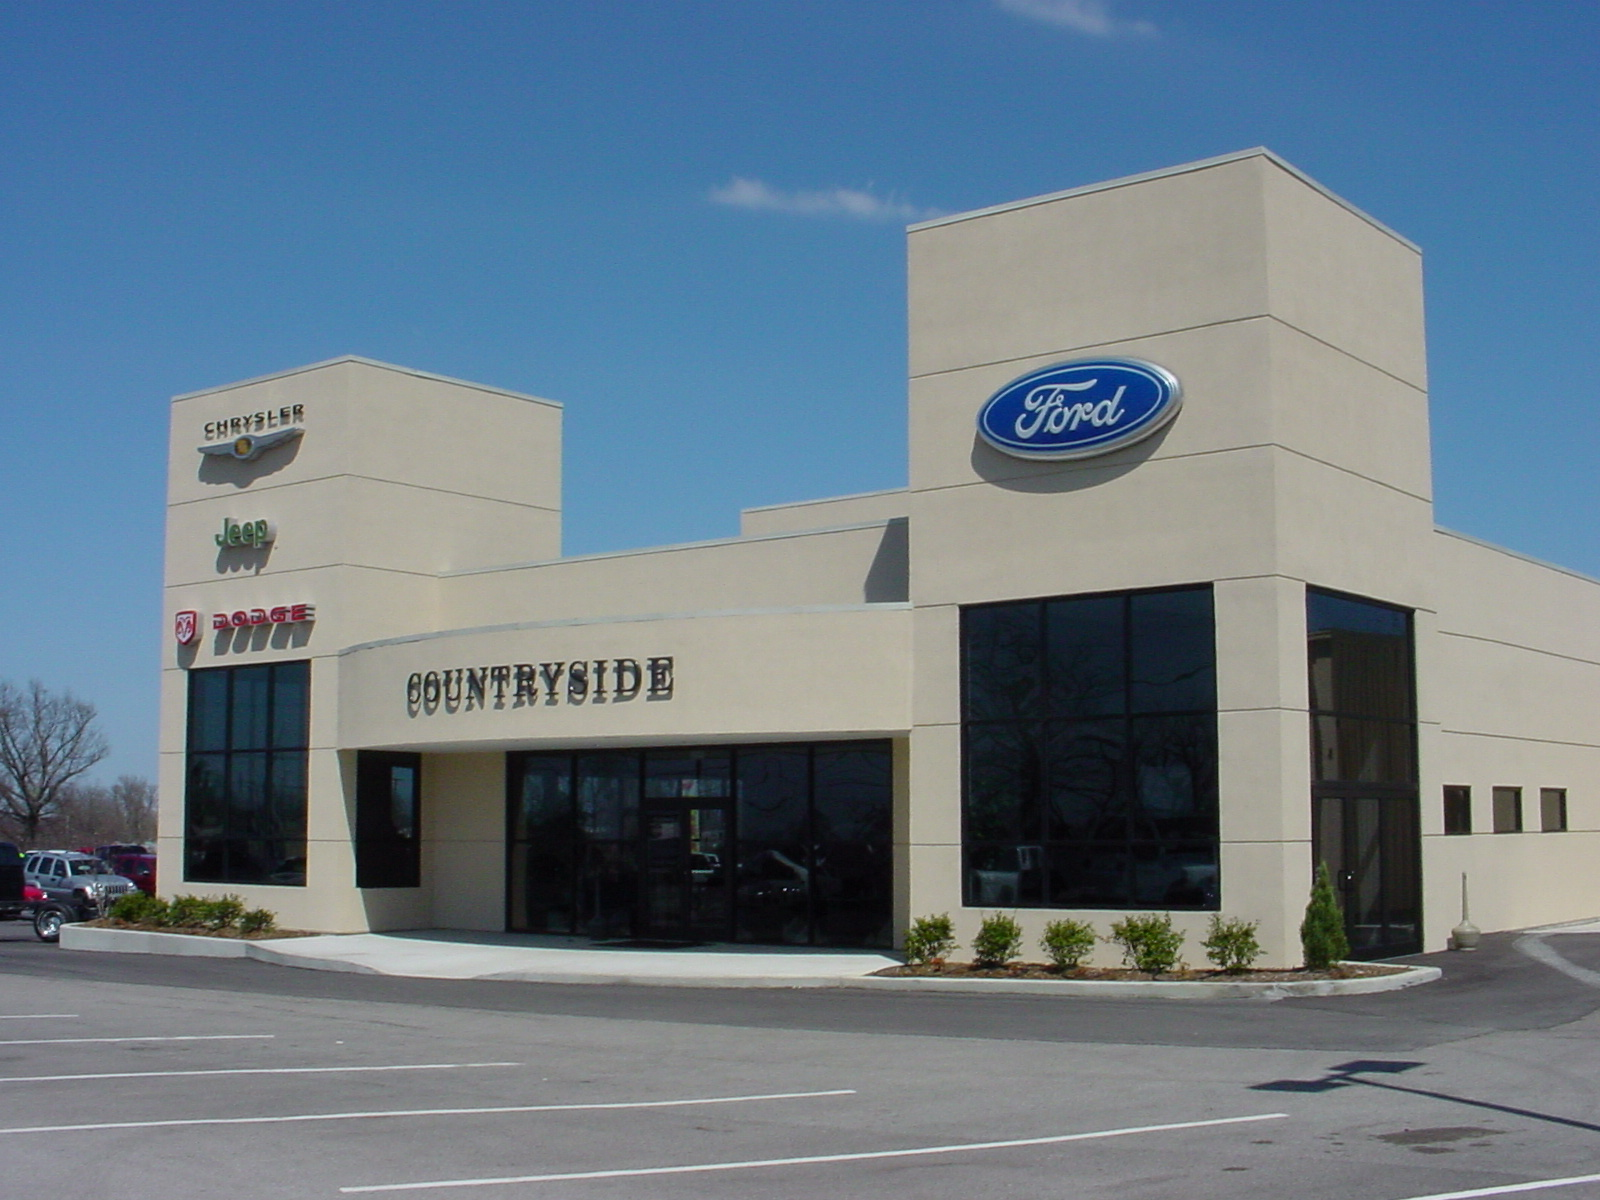 Countryside Motors - Lancaster, KY